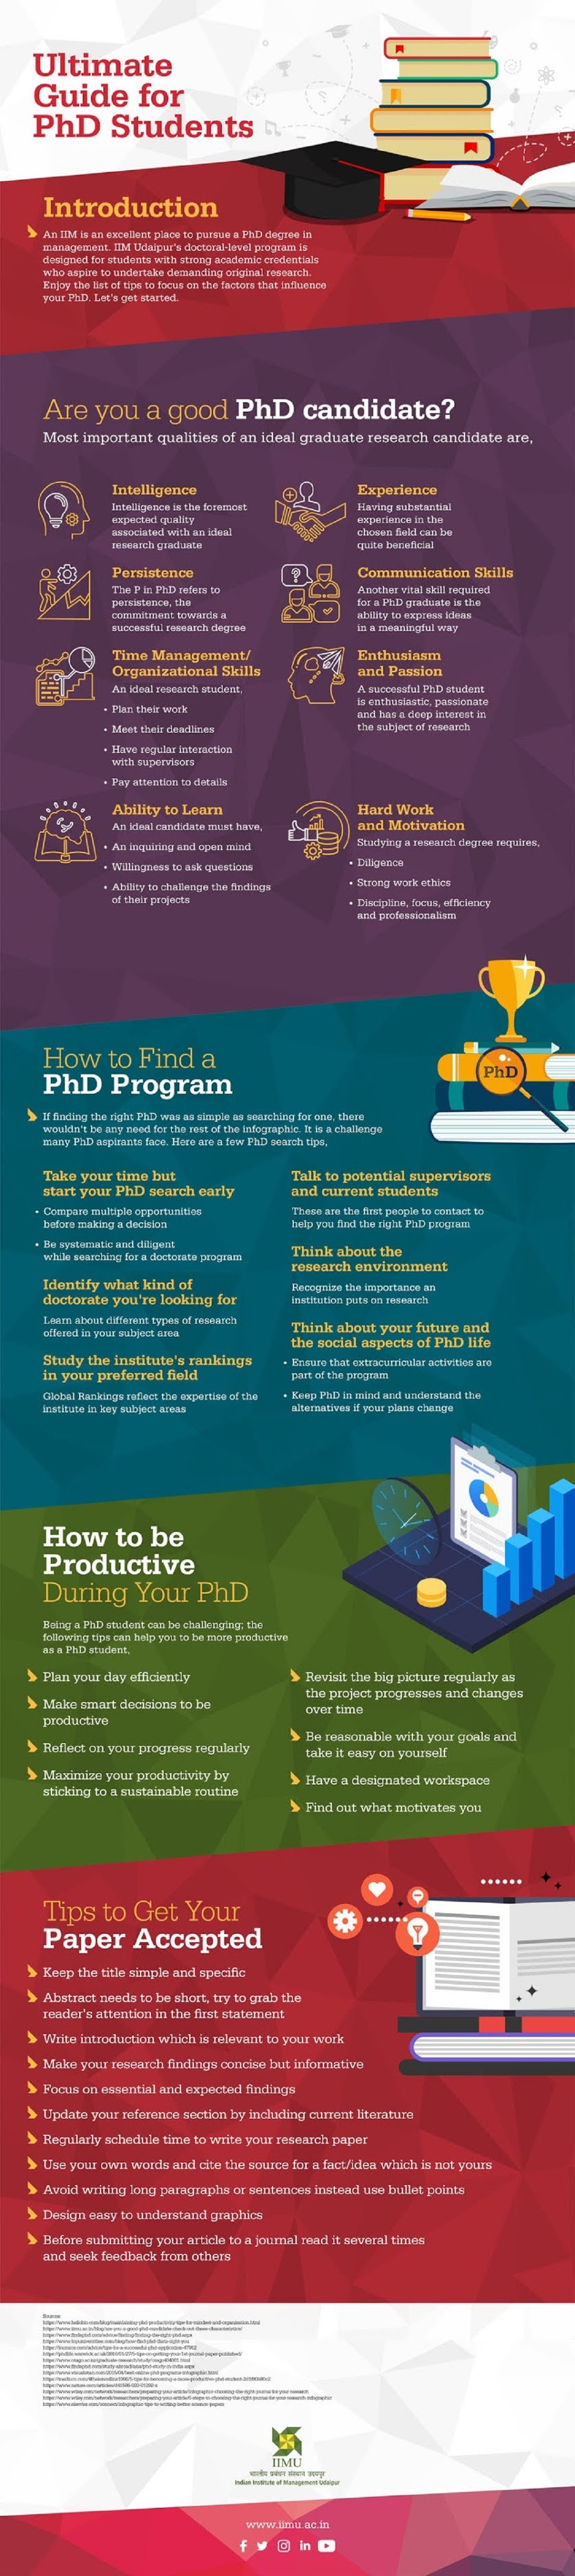 ultimate-guide-for-phd-students-infographic